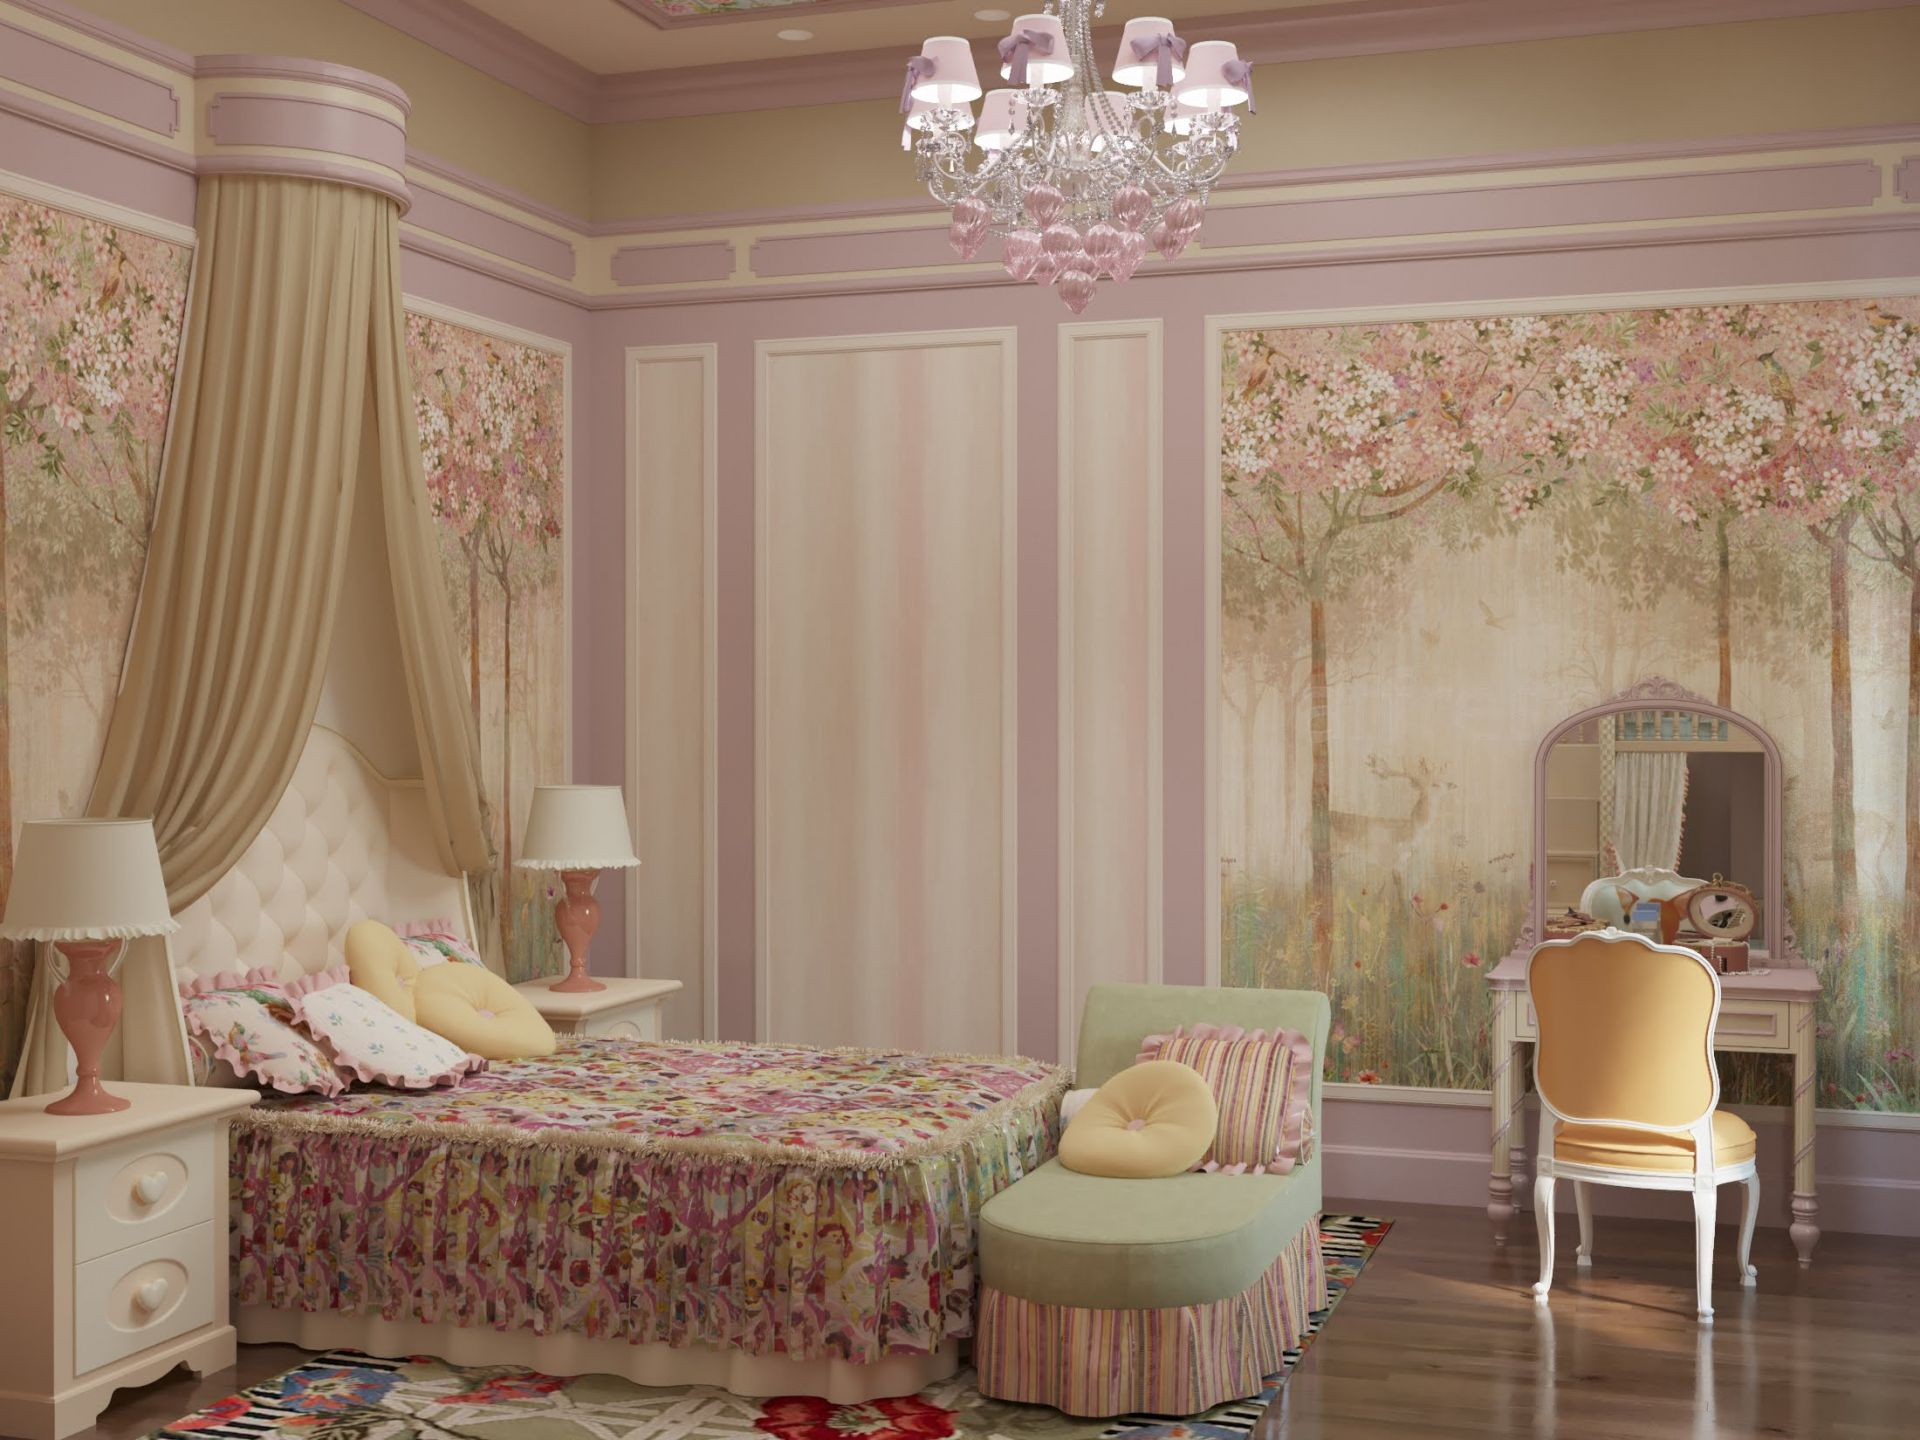 Children's bedroom design